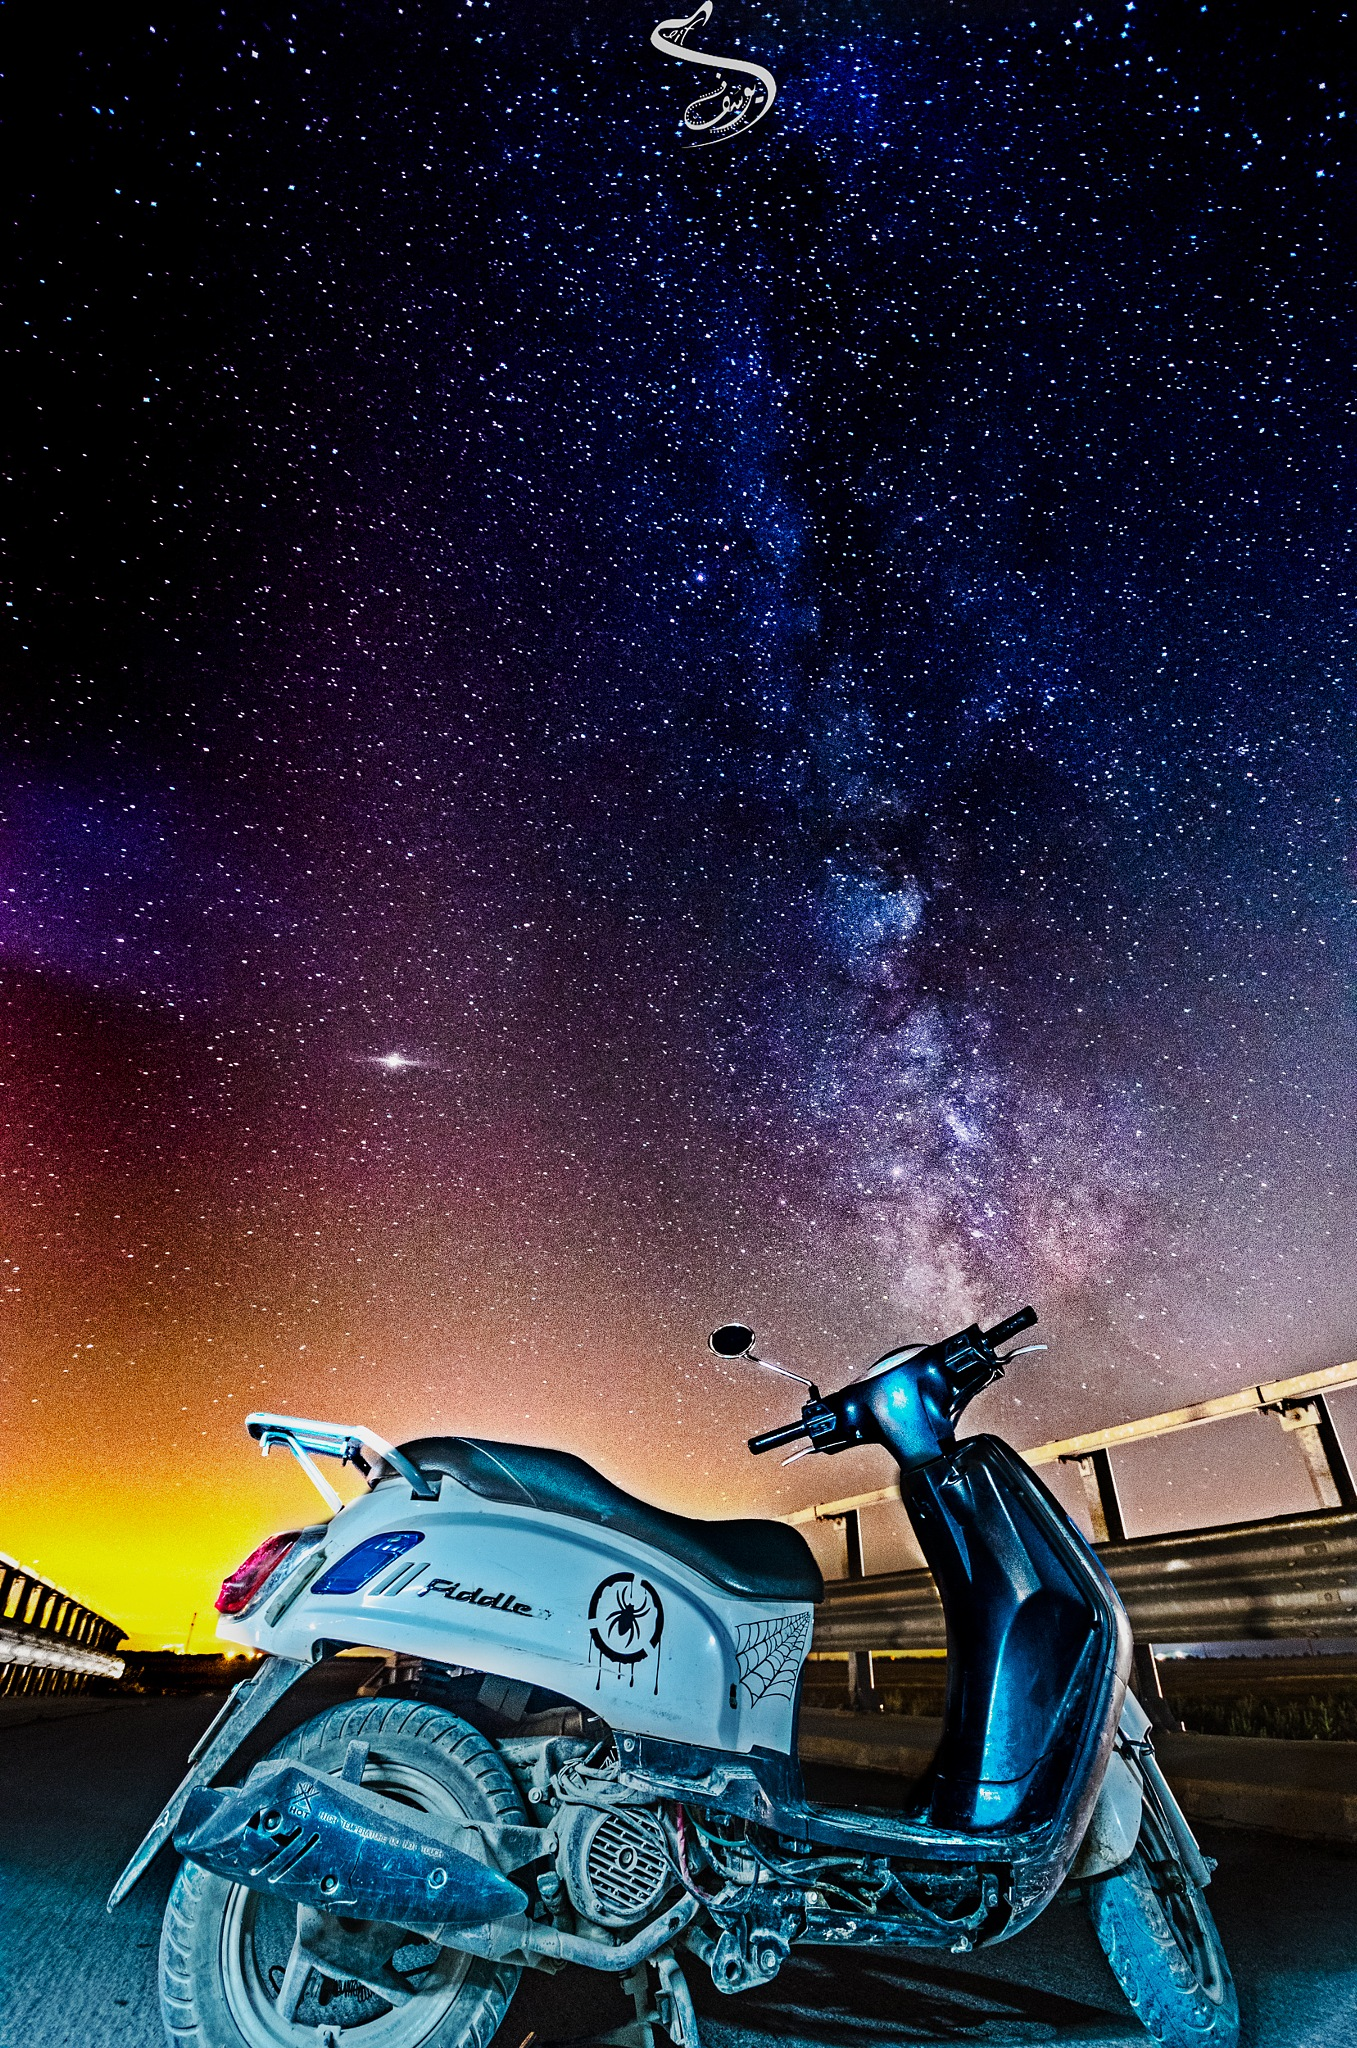 bike watching the stars by Dif Youssouf